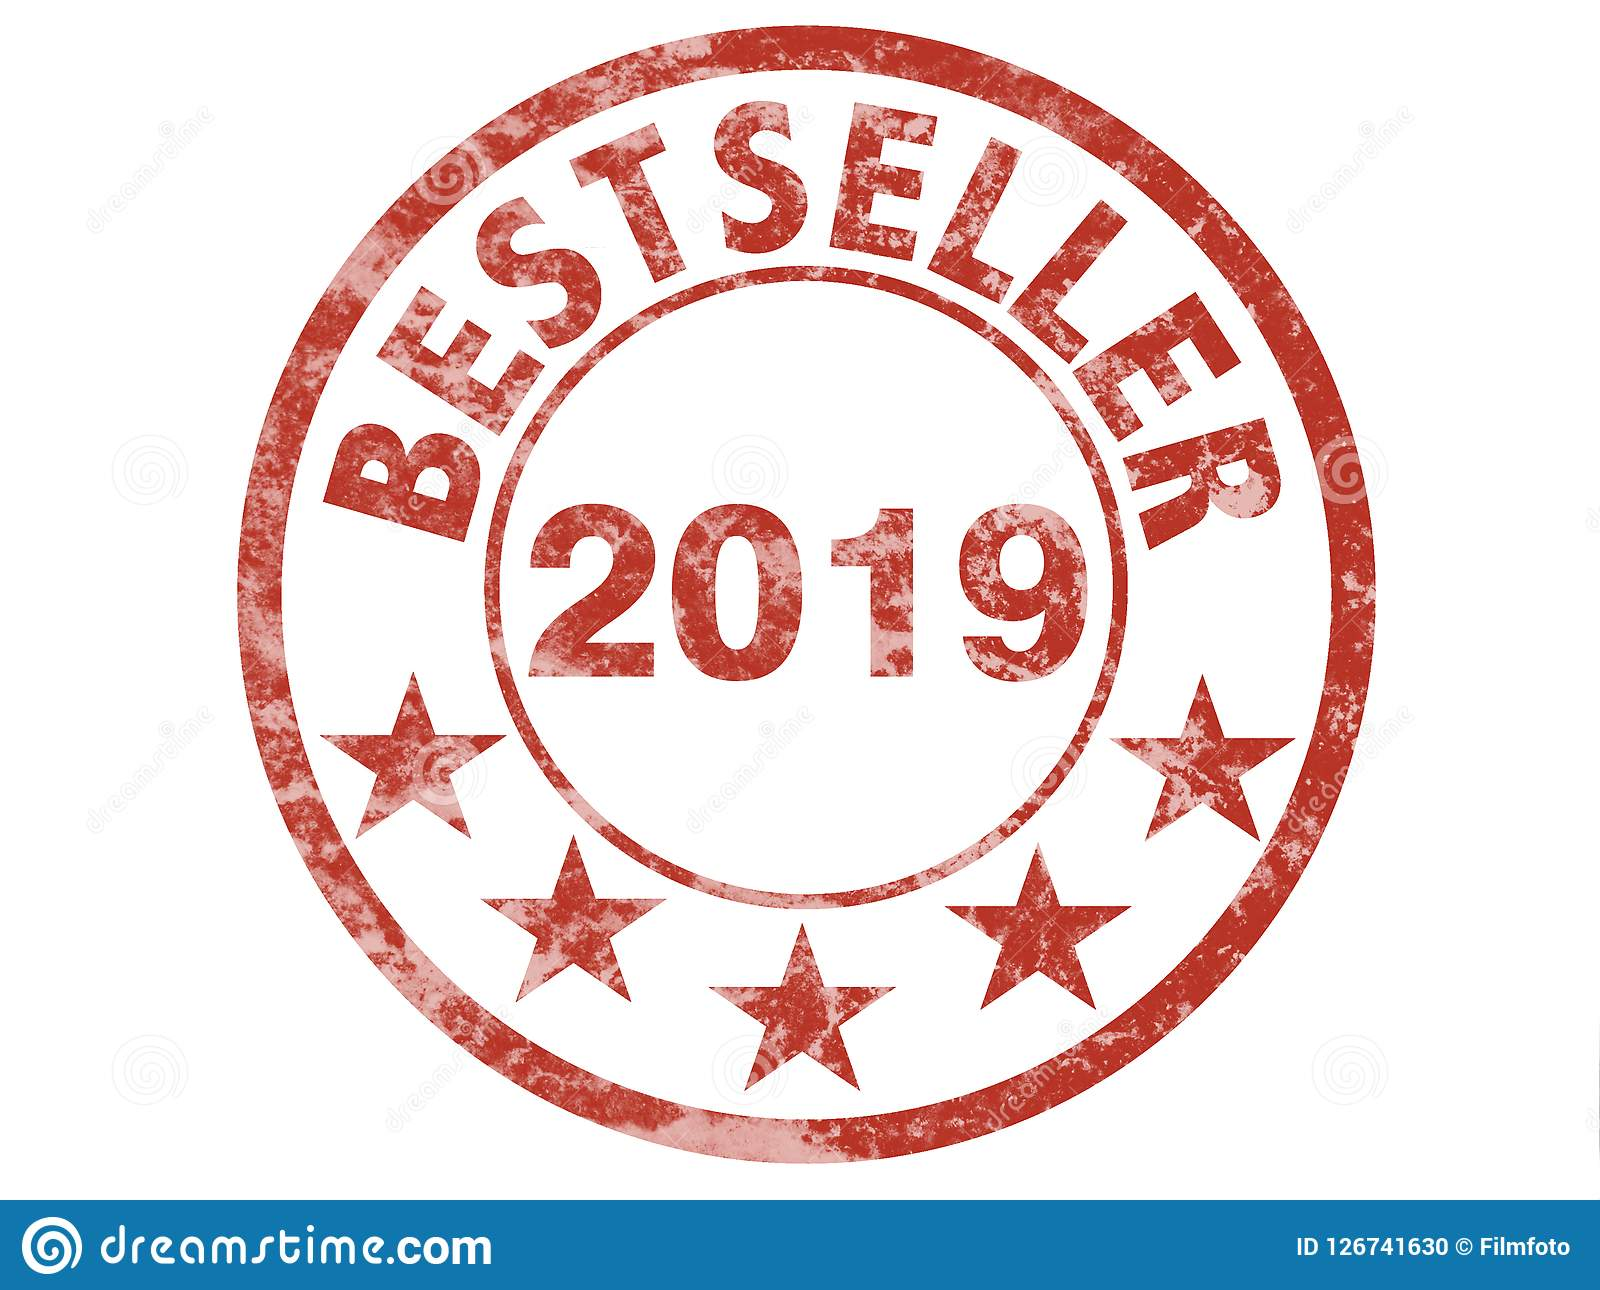 Best Seller 2019 Grunge Stamp Label For Bestseller 2019 Stock Illustration